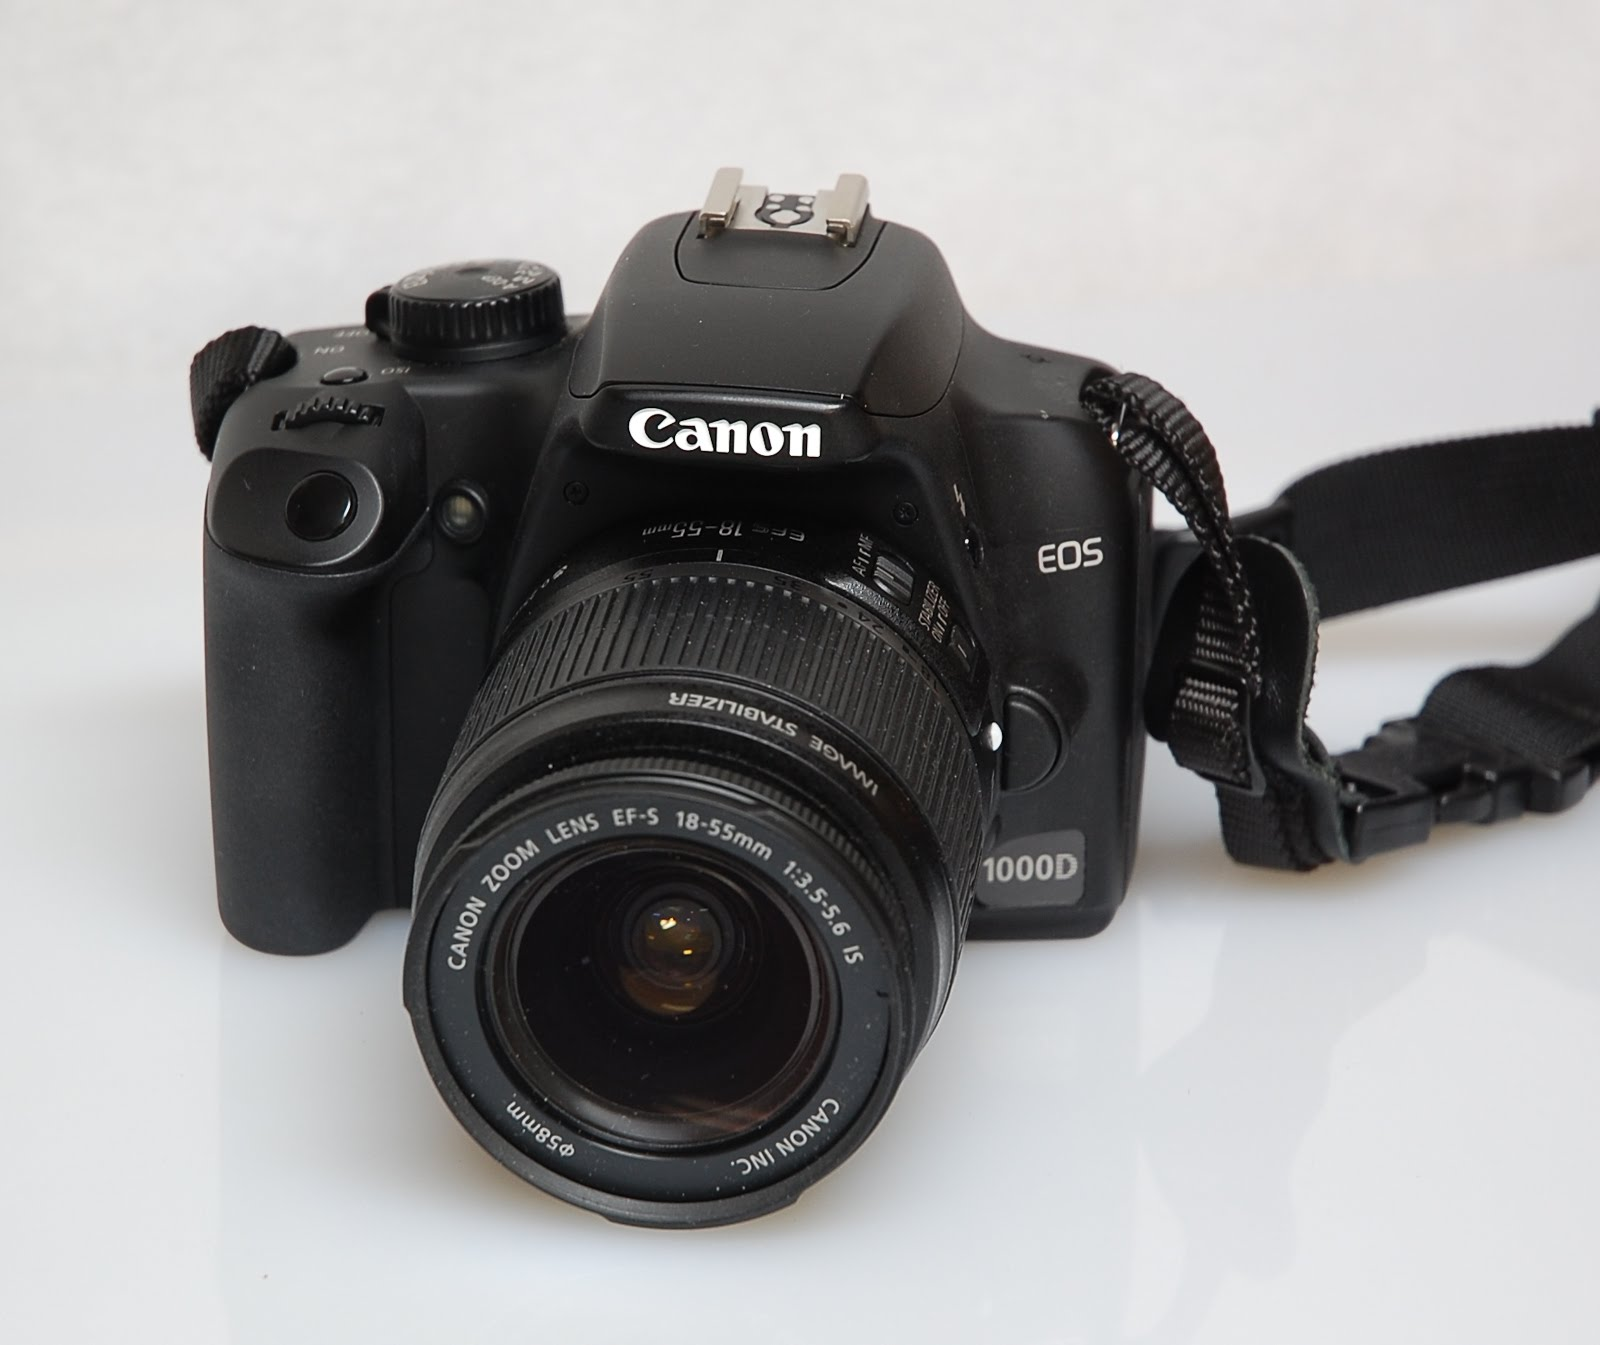 canon 1000d dslr user manual user guide definition rh userguidedefinition blogspot com canon 1000d user manual canon eos 1000d owners manual